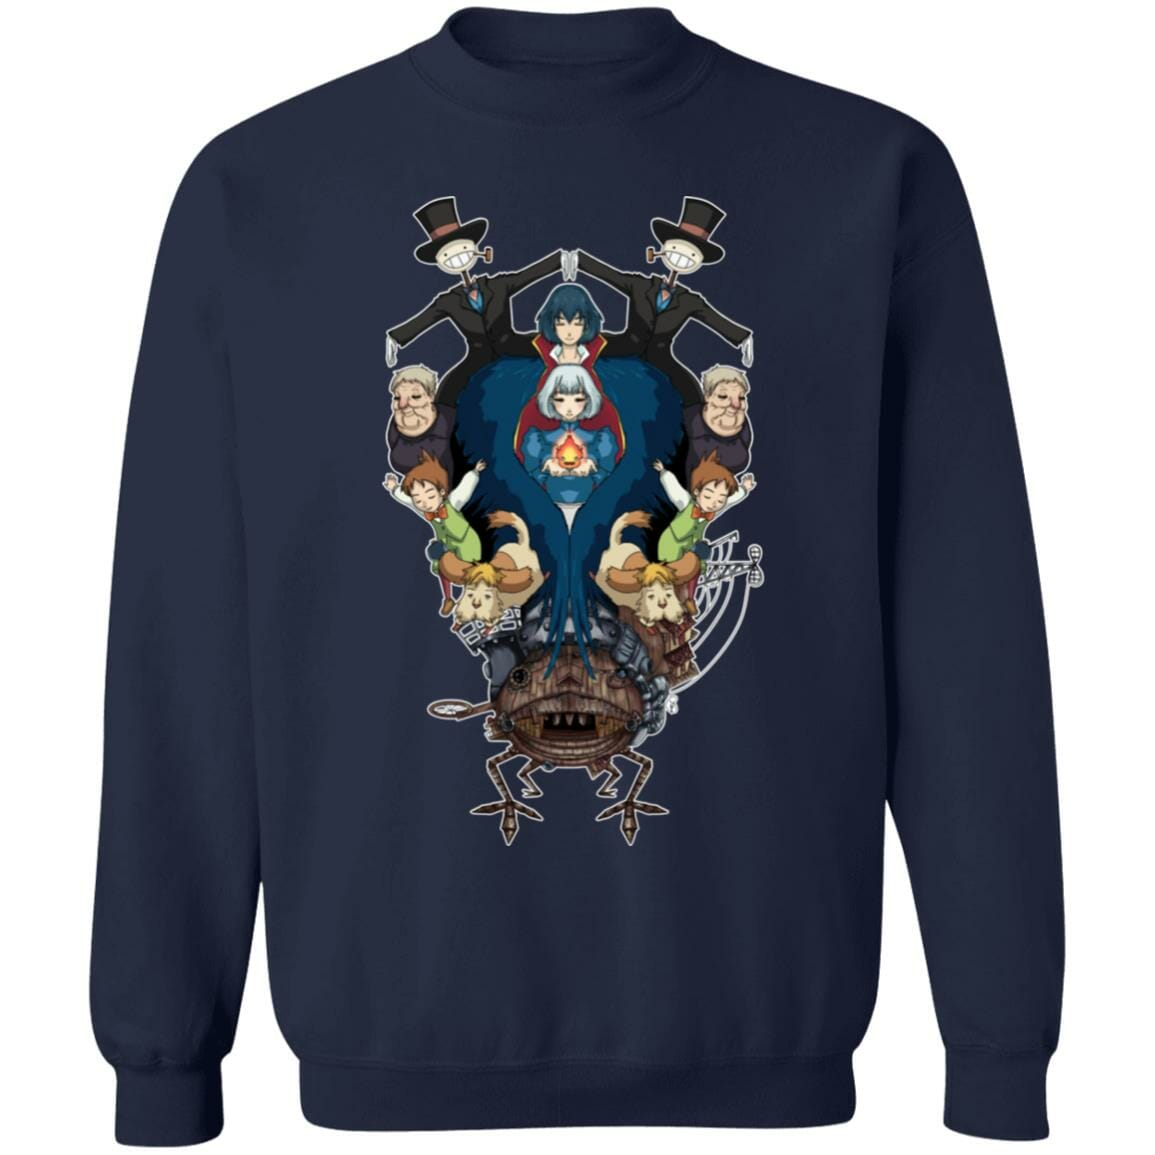 Howl's Moving Castle Characters Mirror Sweatshirt